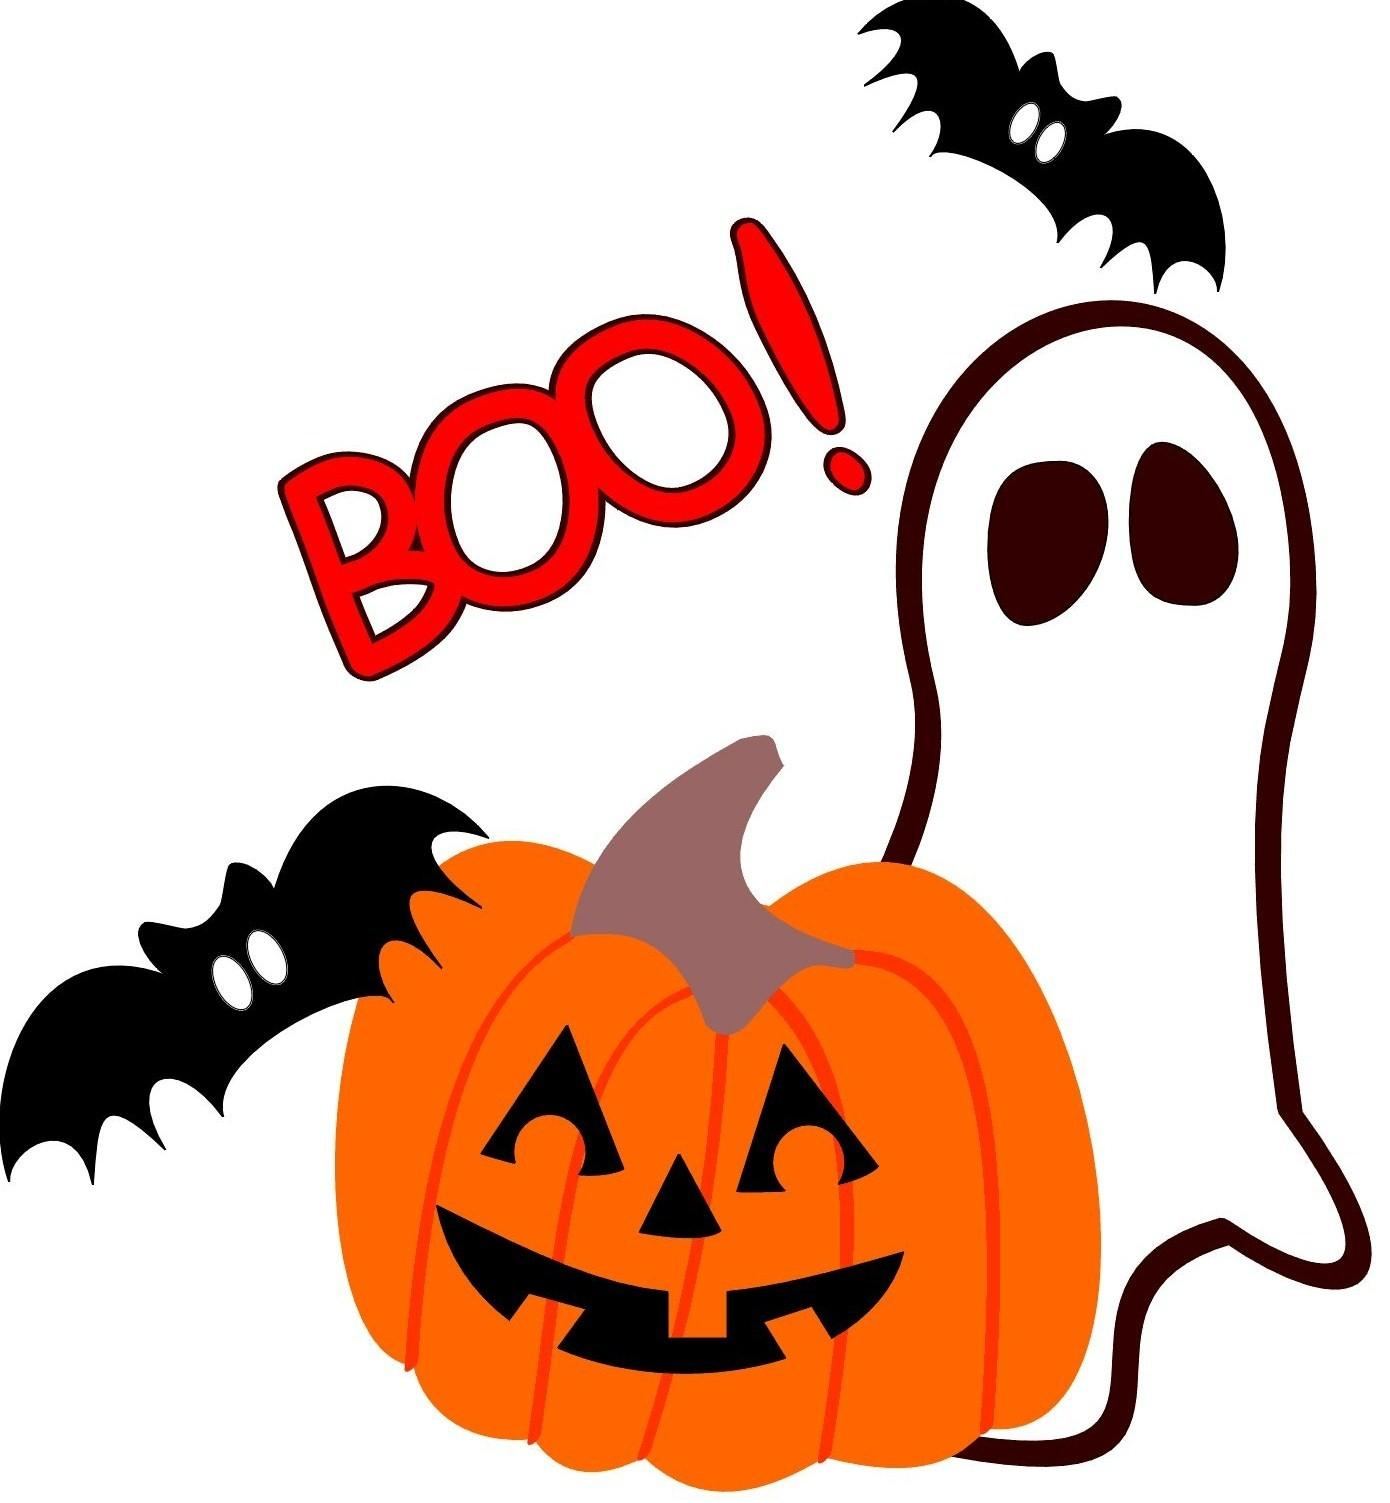 Halloween Party Clipart images collection for free download.